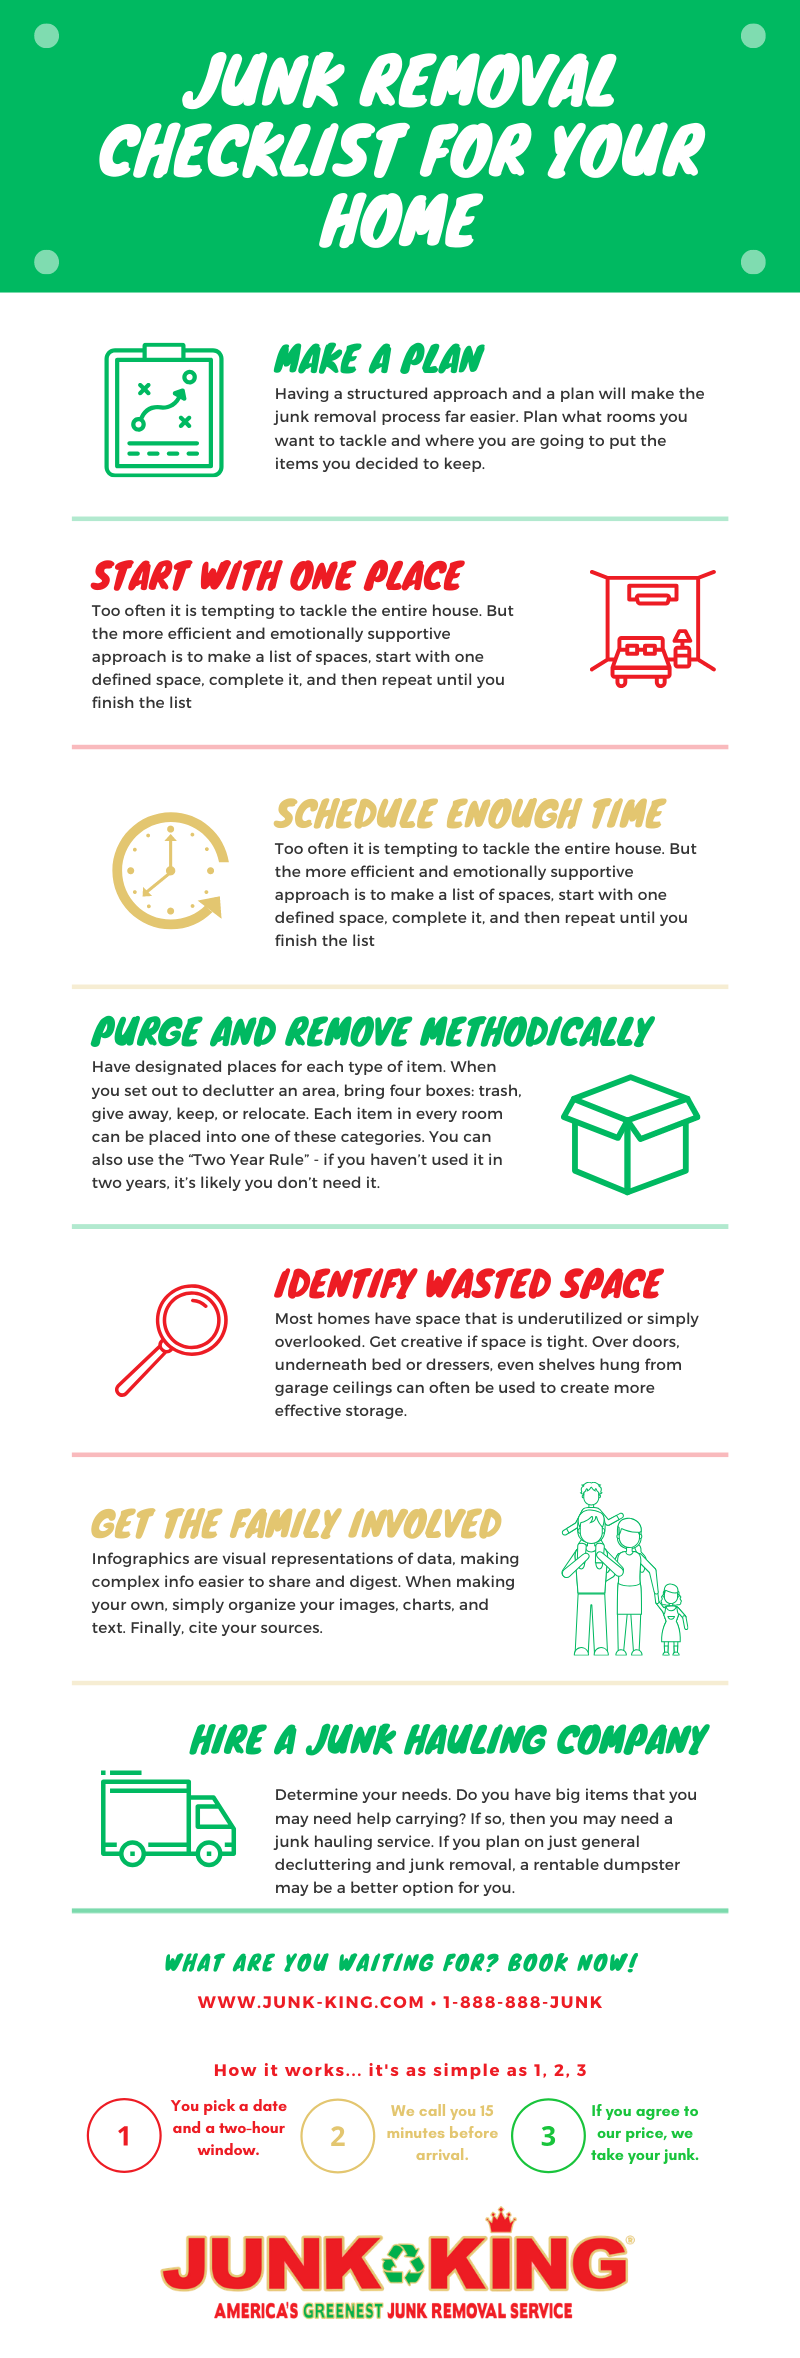 Junk Removal Checklist for Your Home